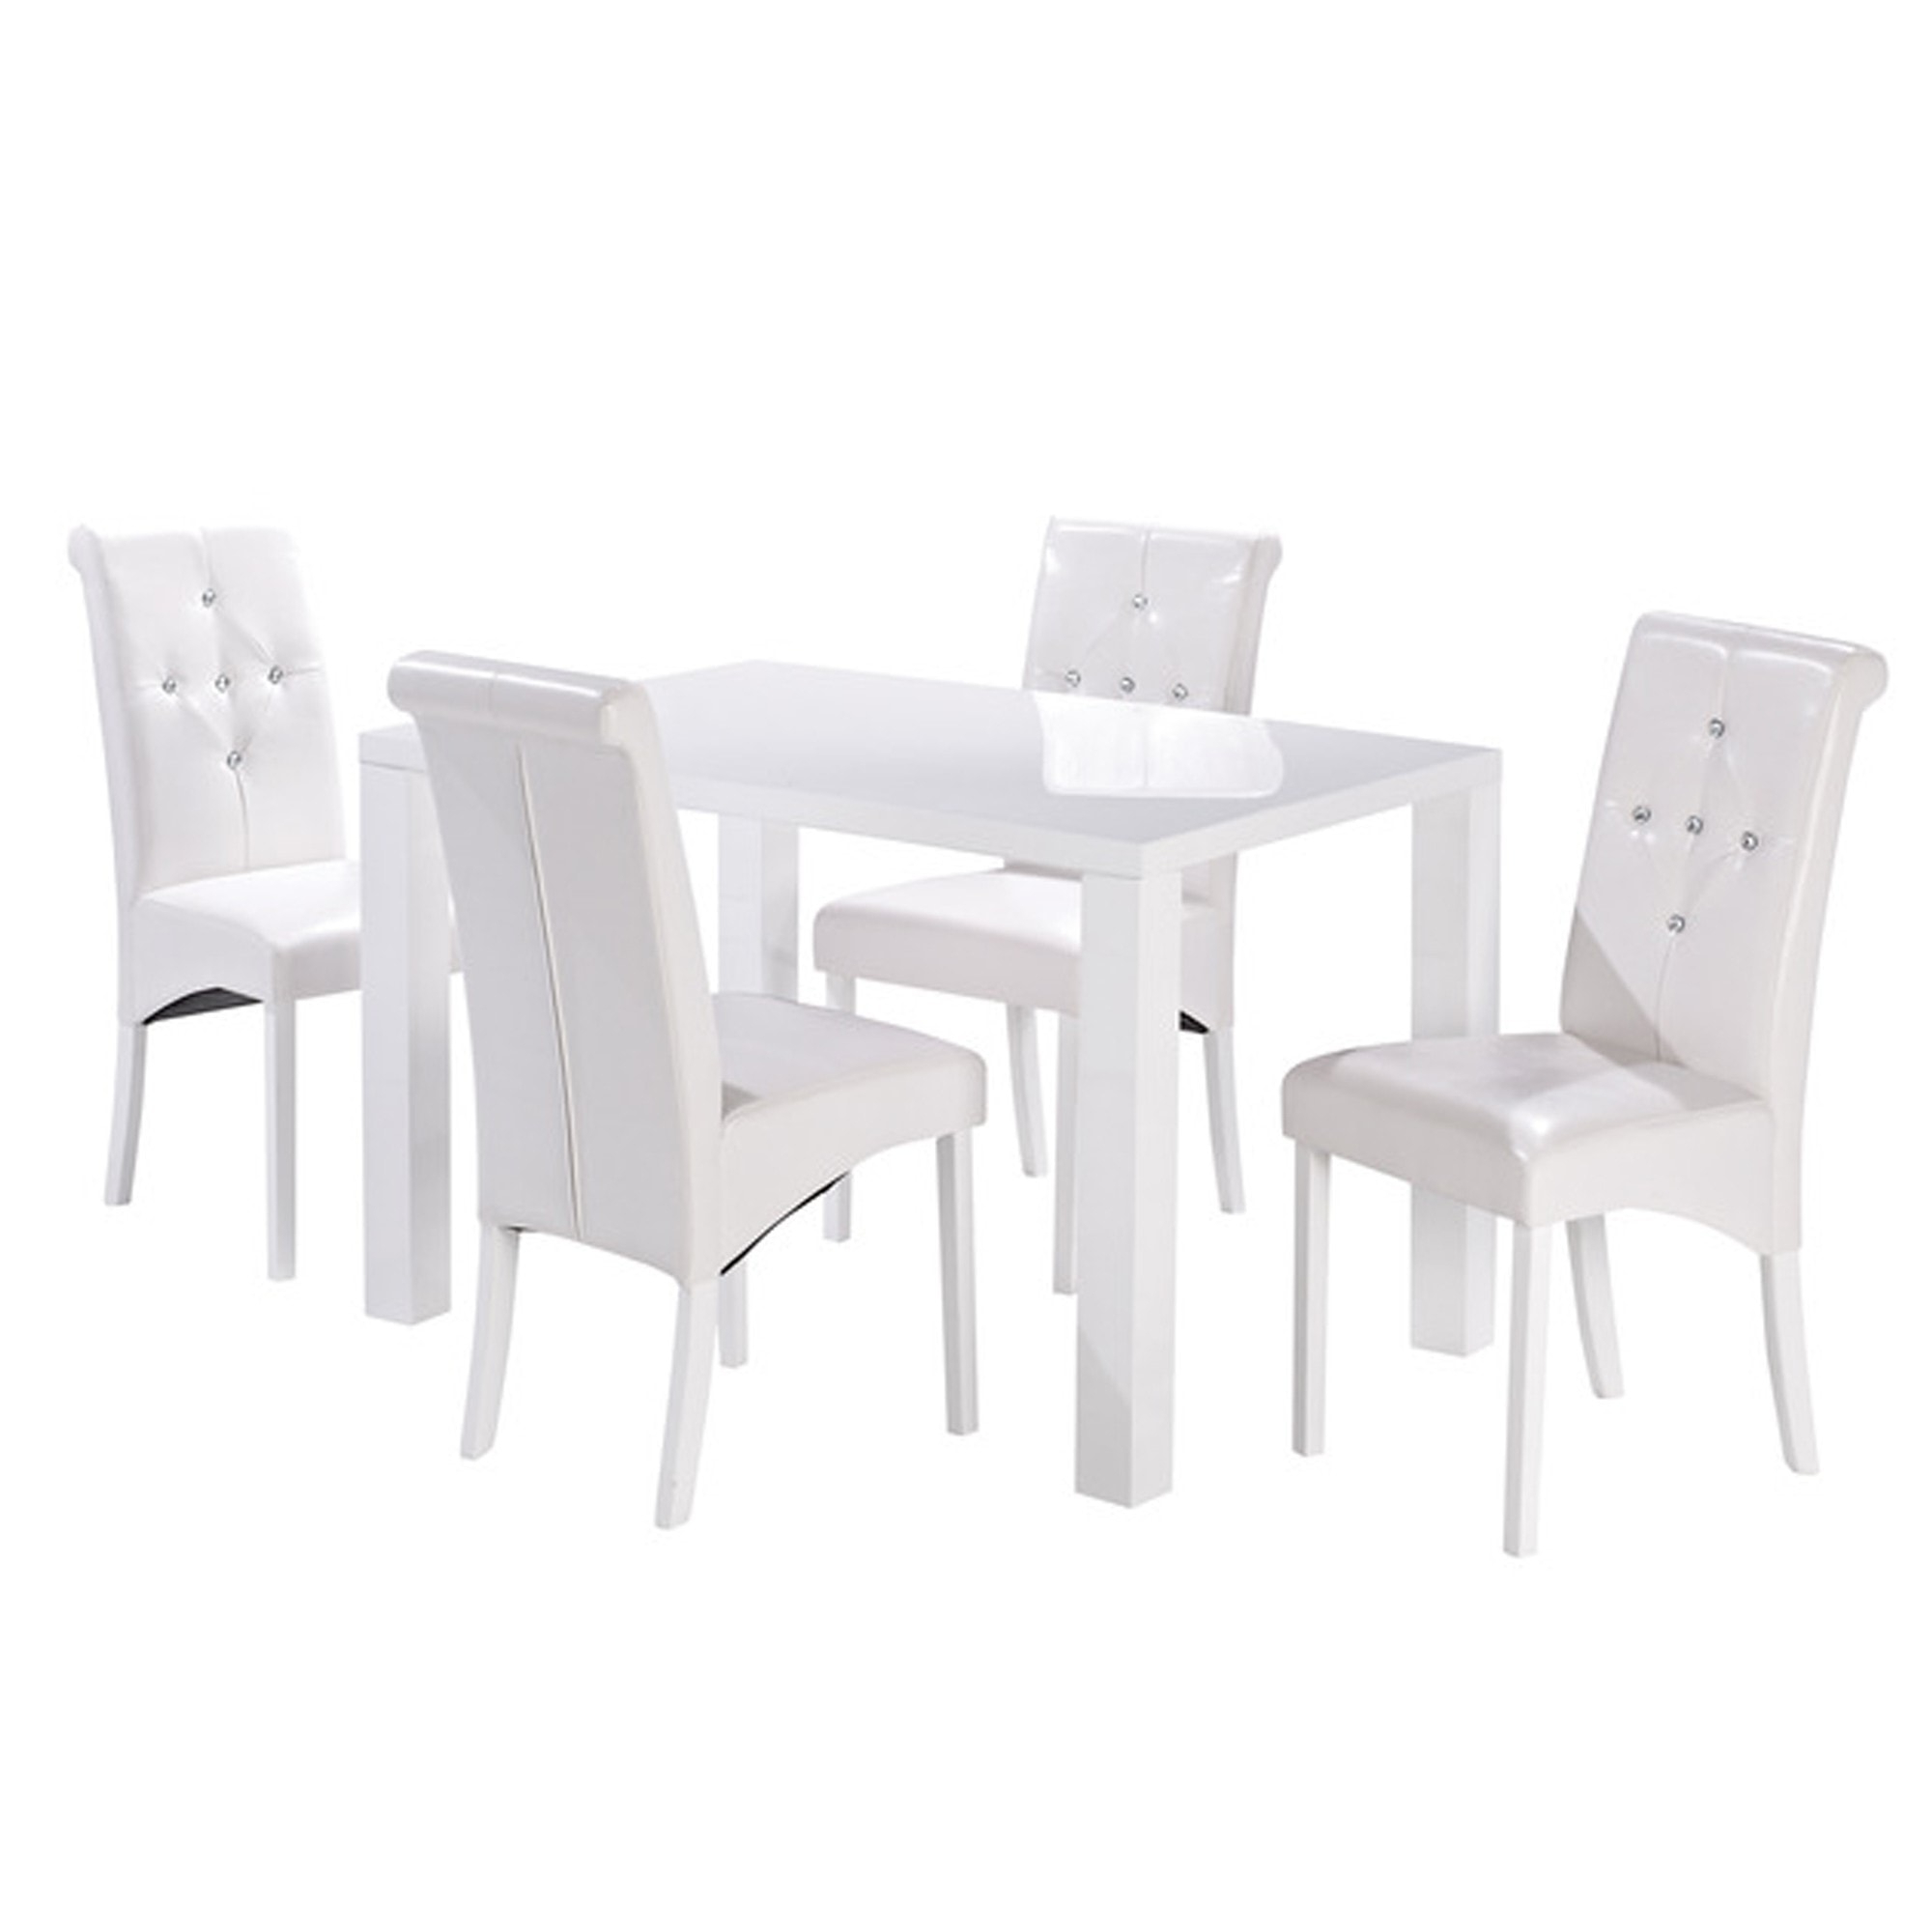 Puro White Medium Dining Table With Regard To Newest Medium Dining Tables (View 3 of 25)